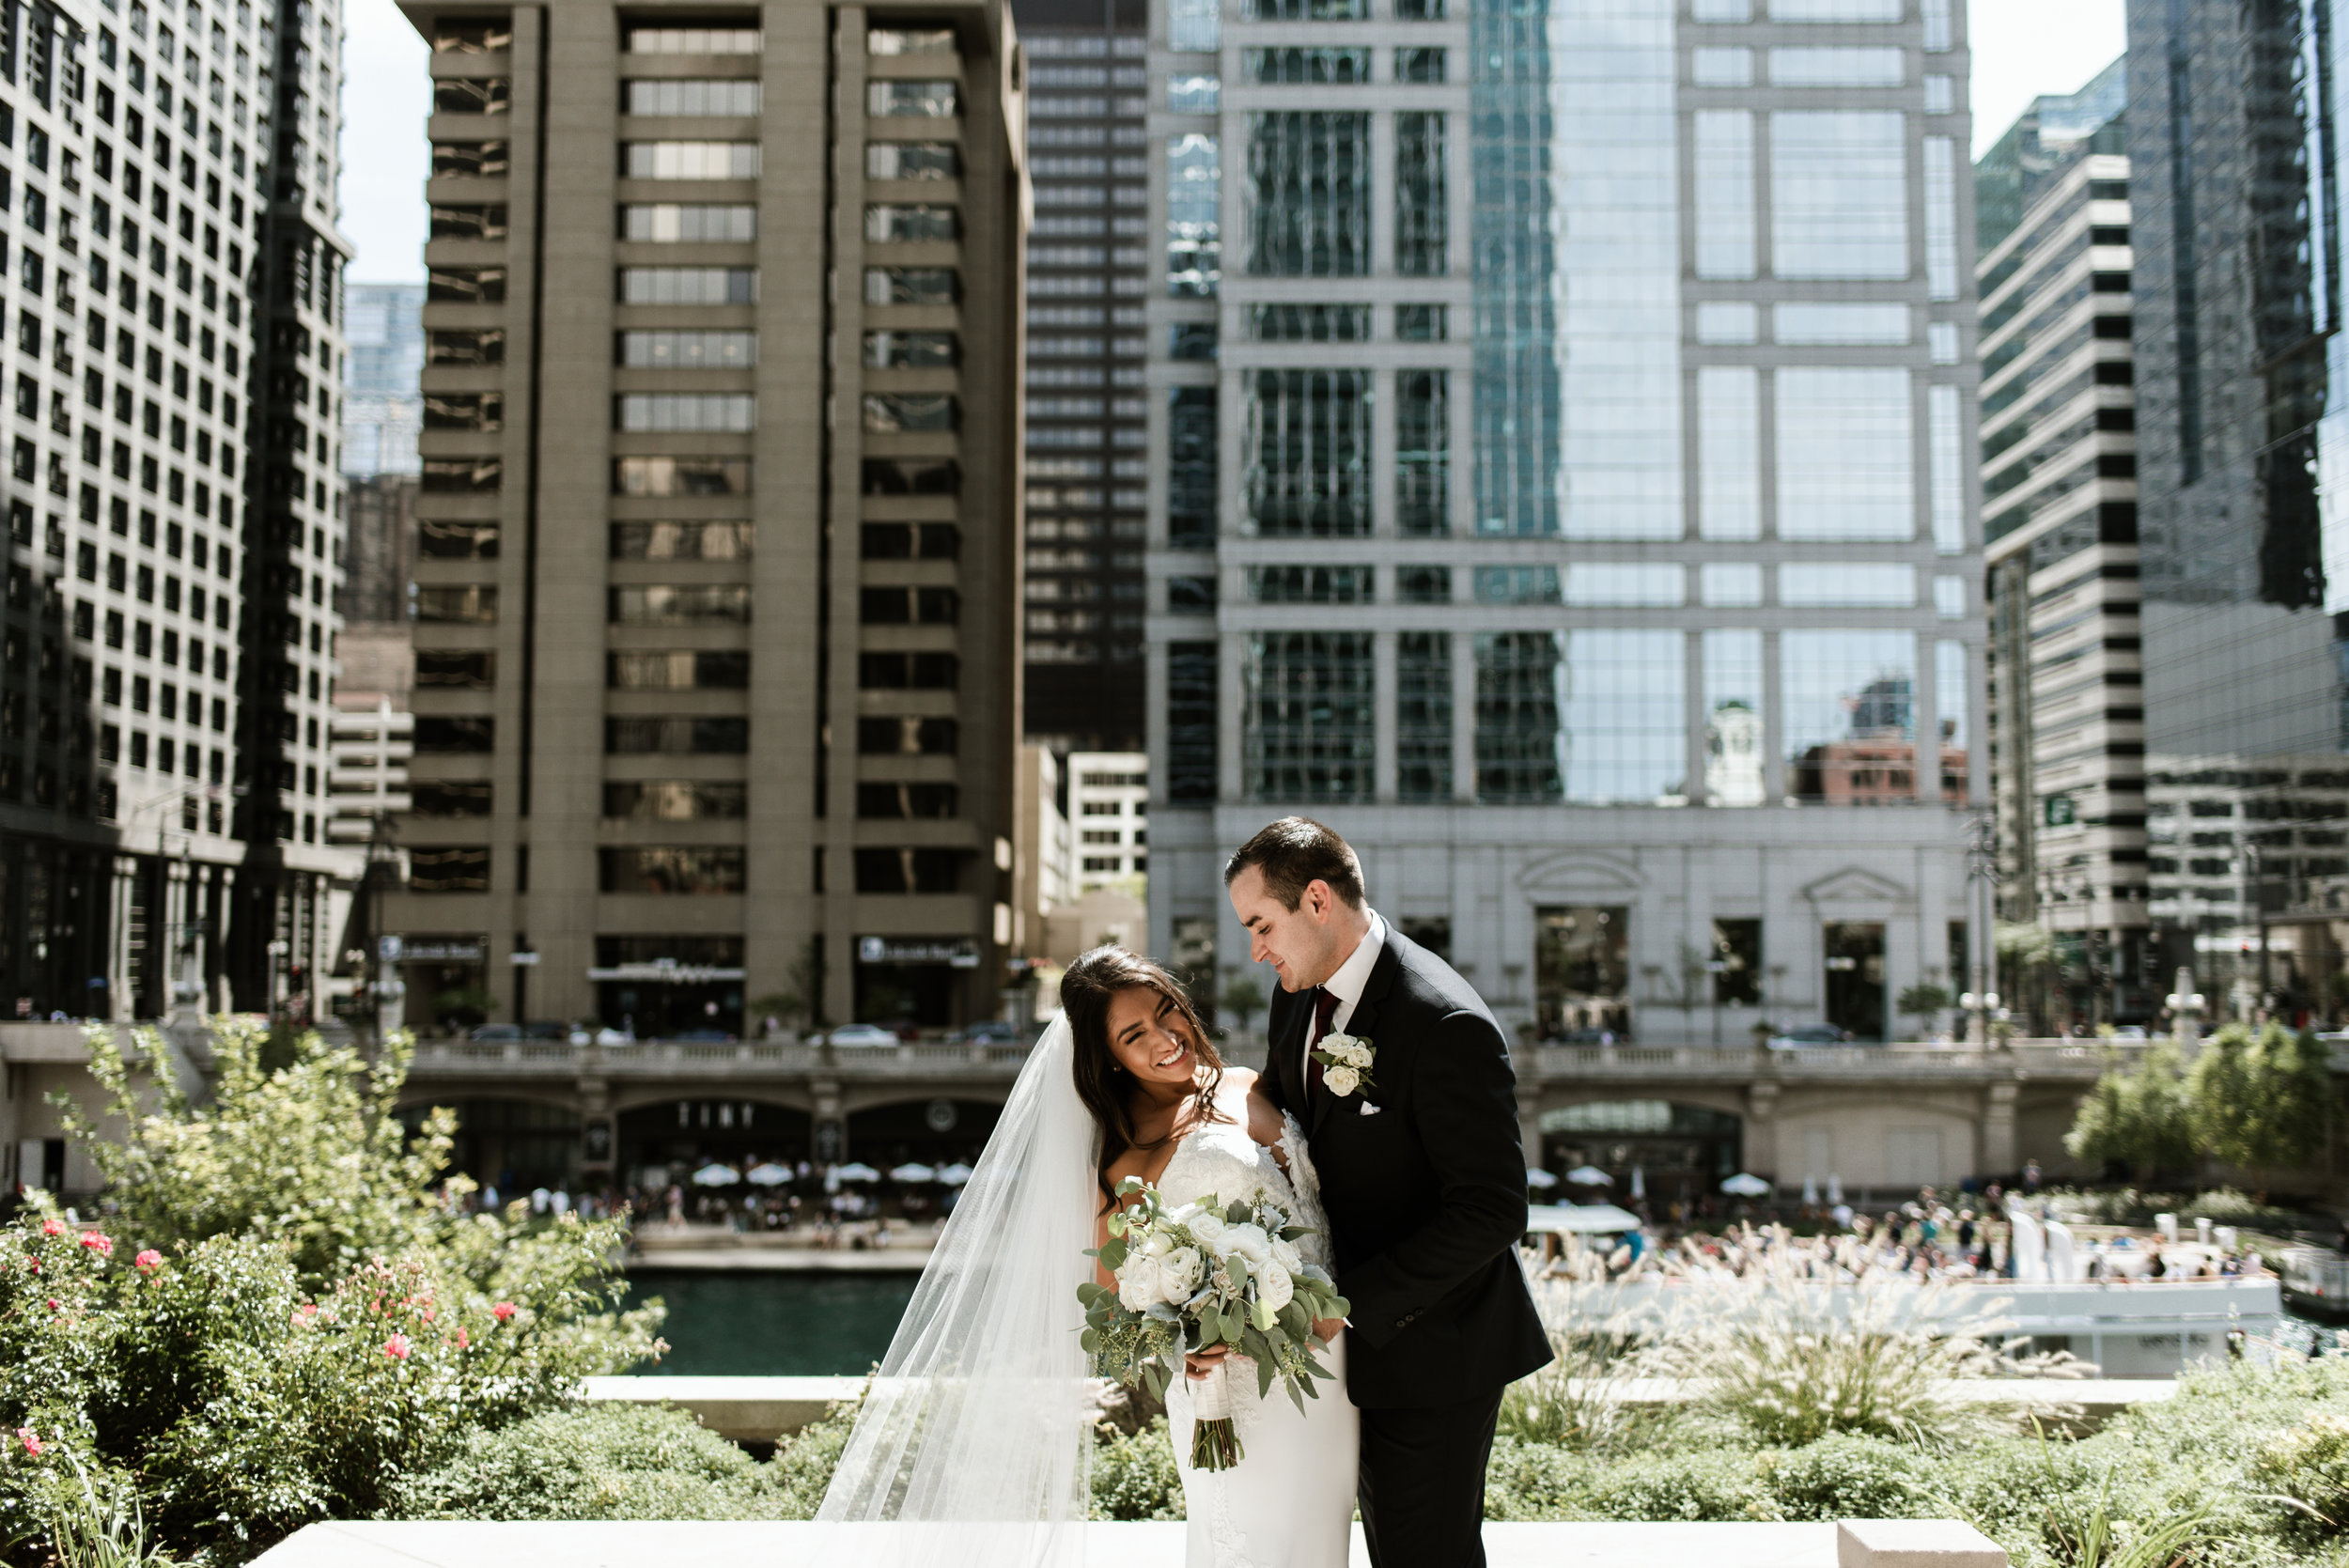 Mj and Kevin - Modern Romantic City Wedding | The Westin Chicago Northshore And Ignite Glass Studios | Chicago, IL | Naperville Wedding Photographer